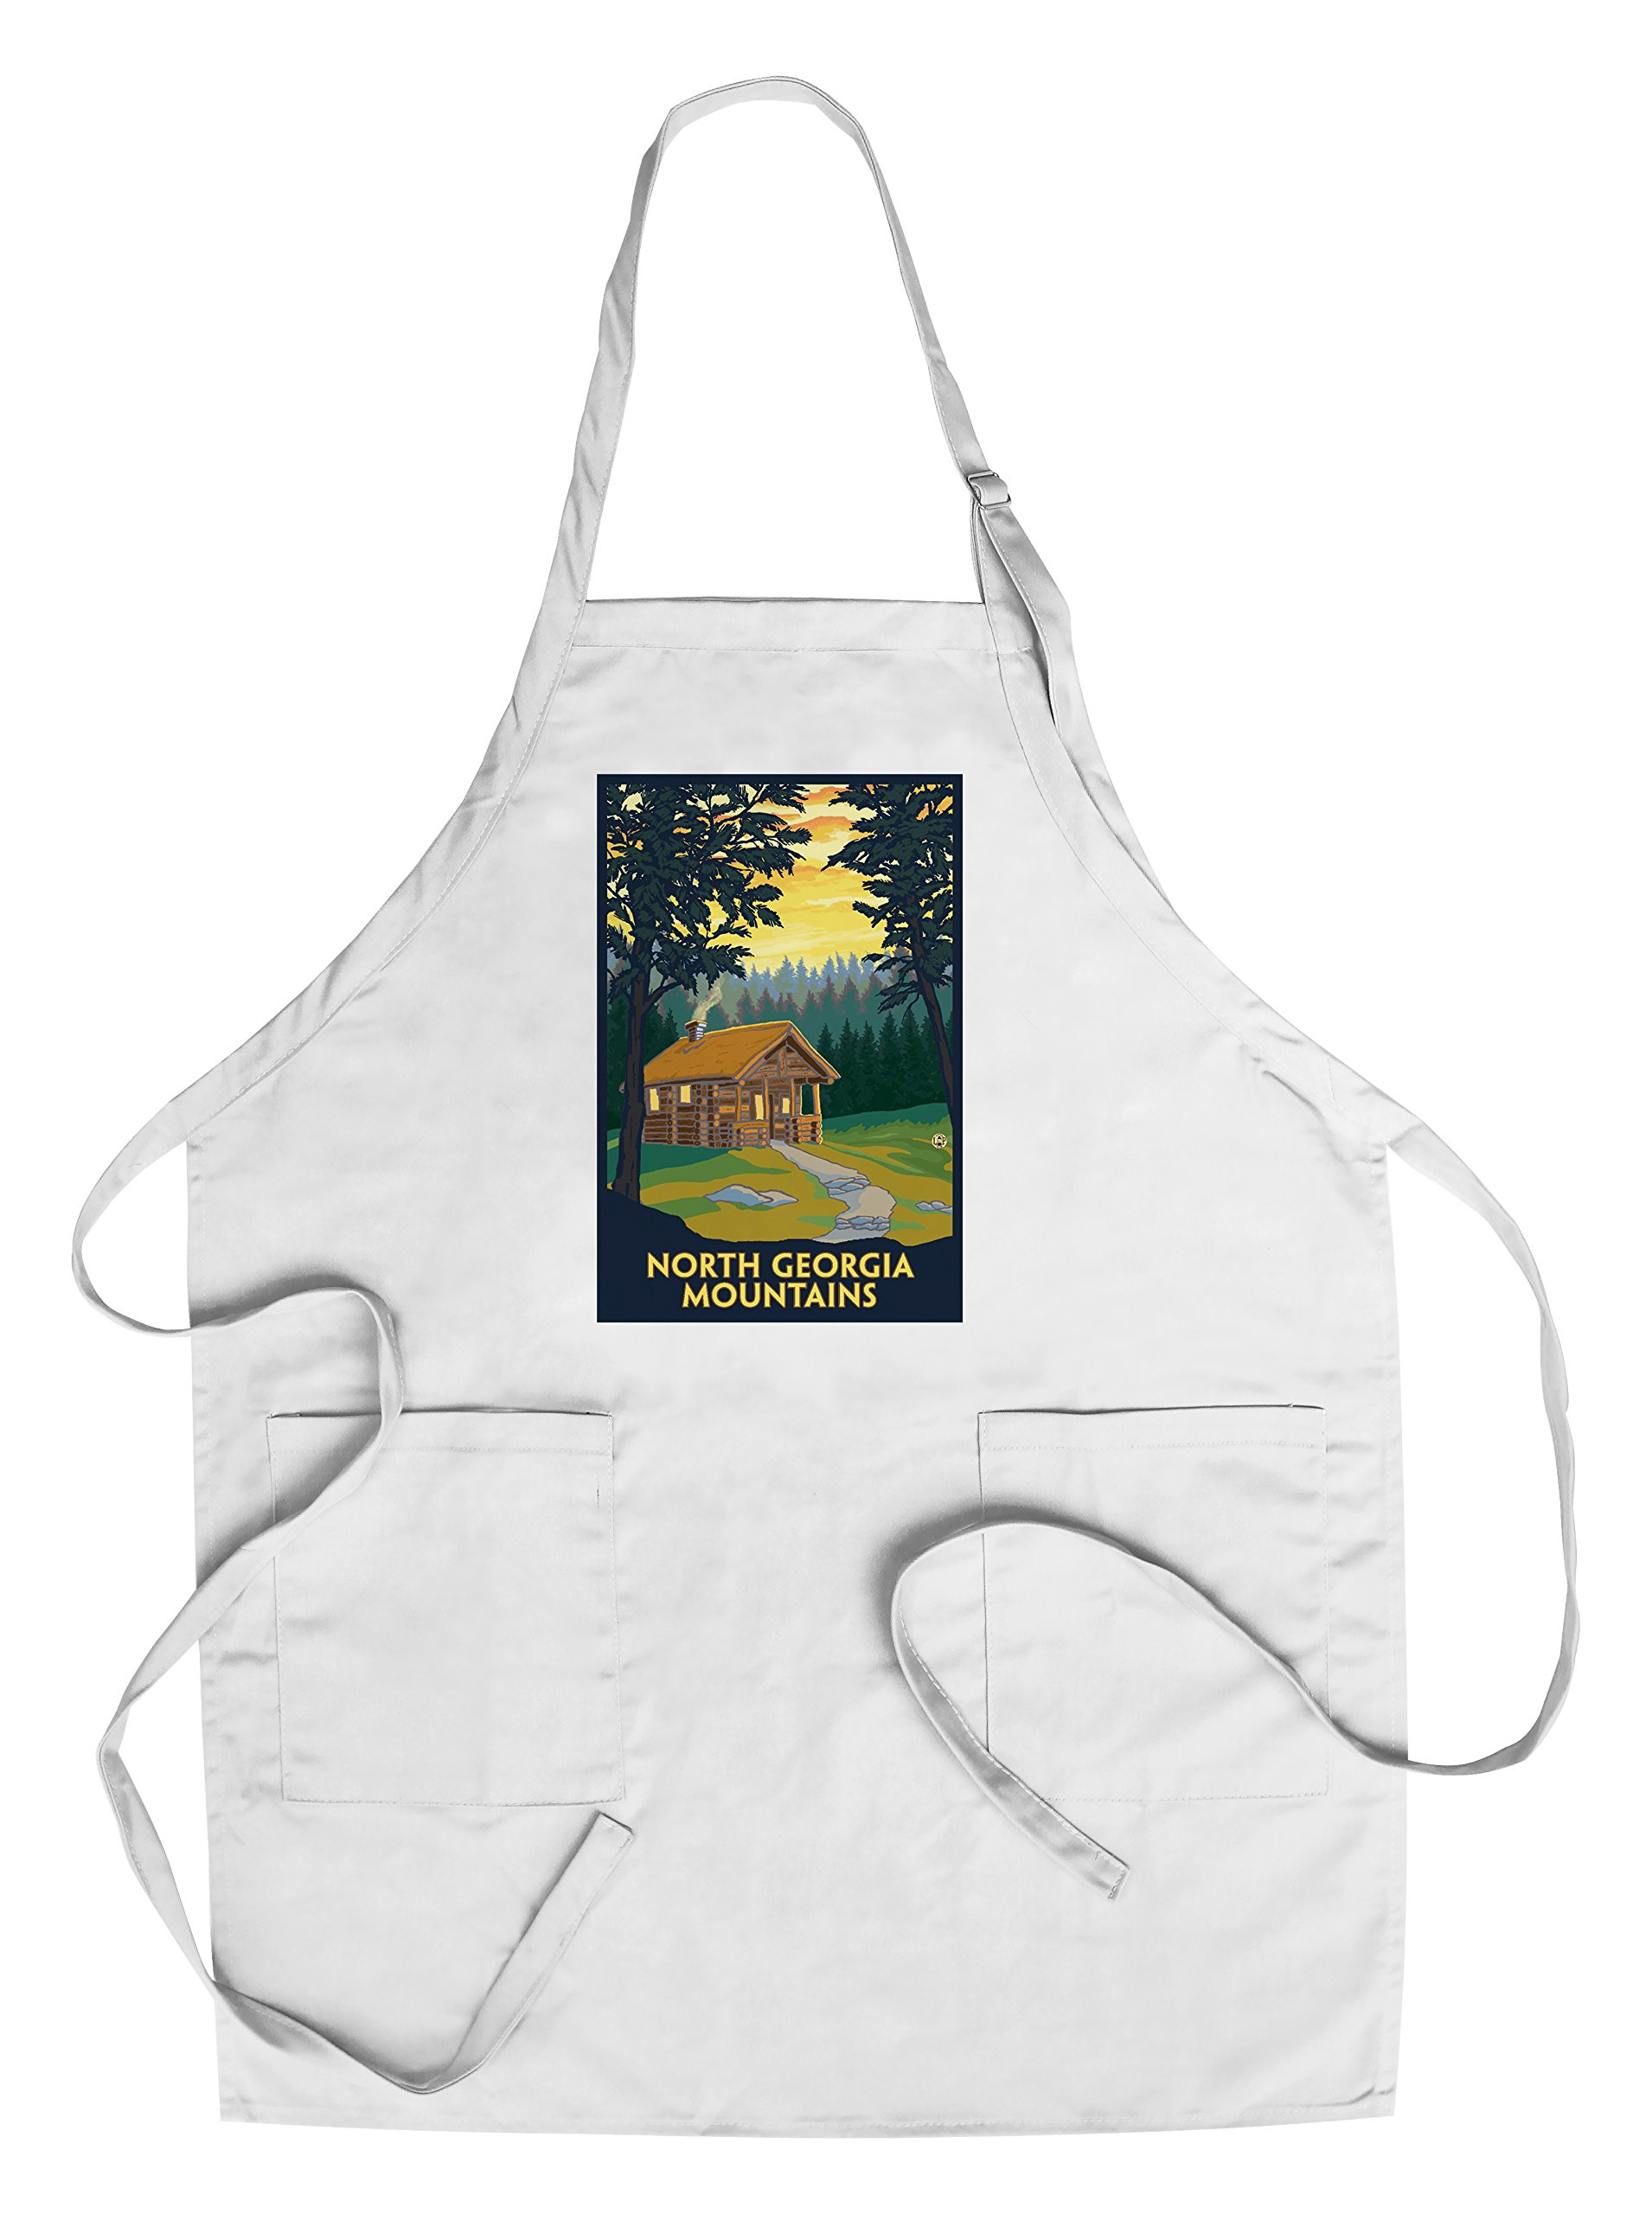 North Georgia Mountains - Cabin in Woods (Cotton/Polyester Chef's Apron)